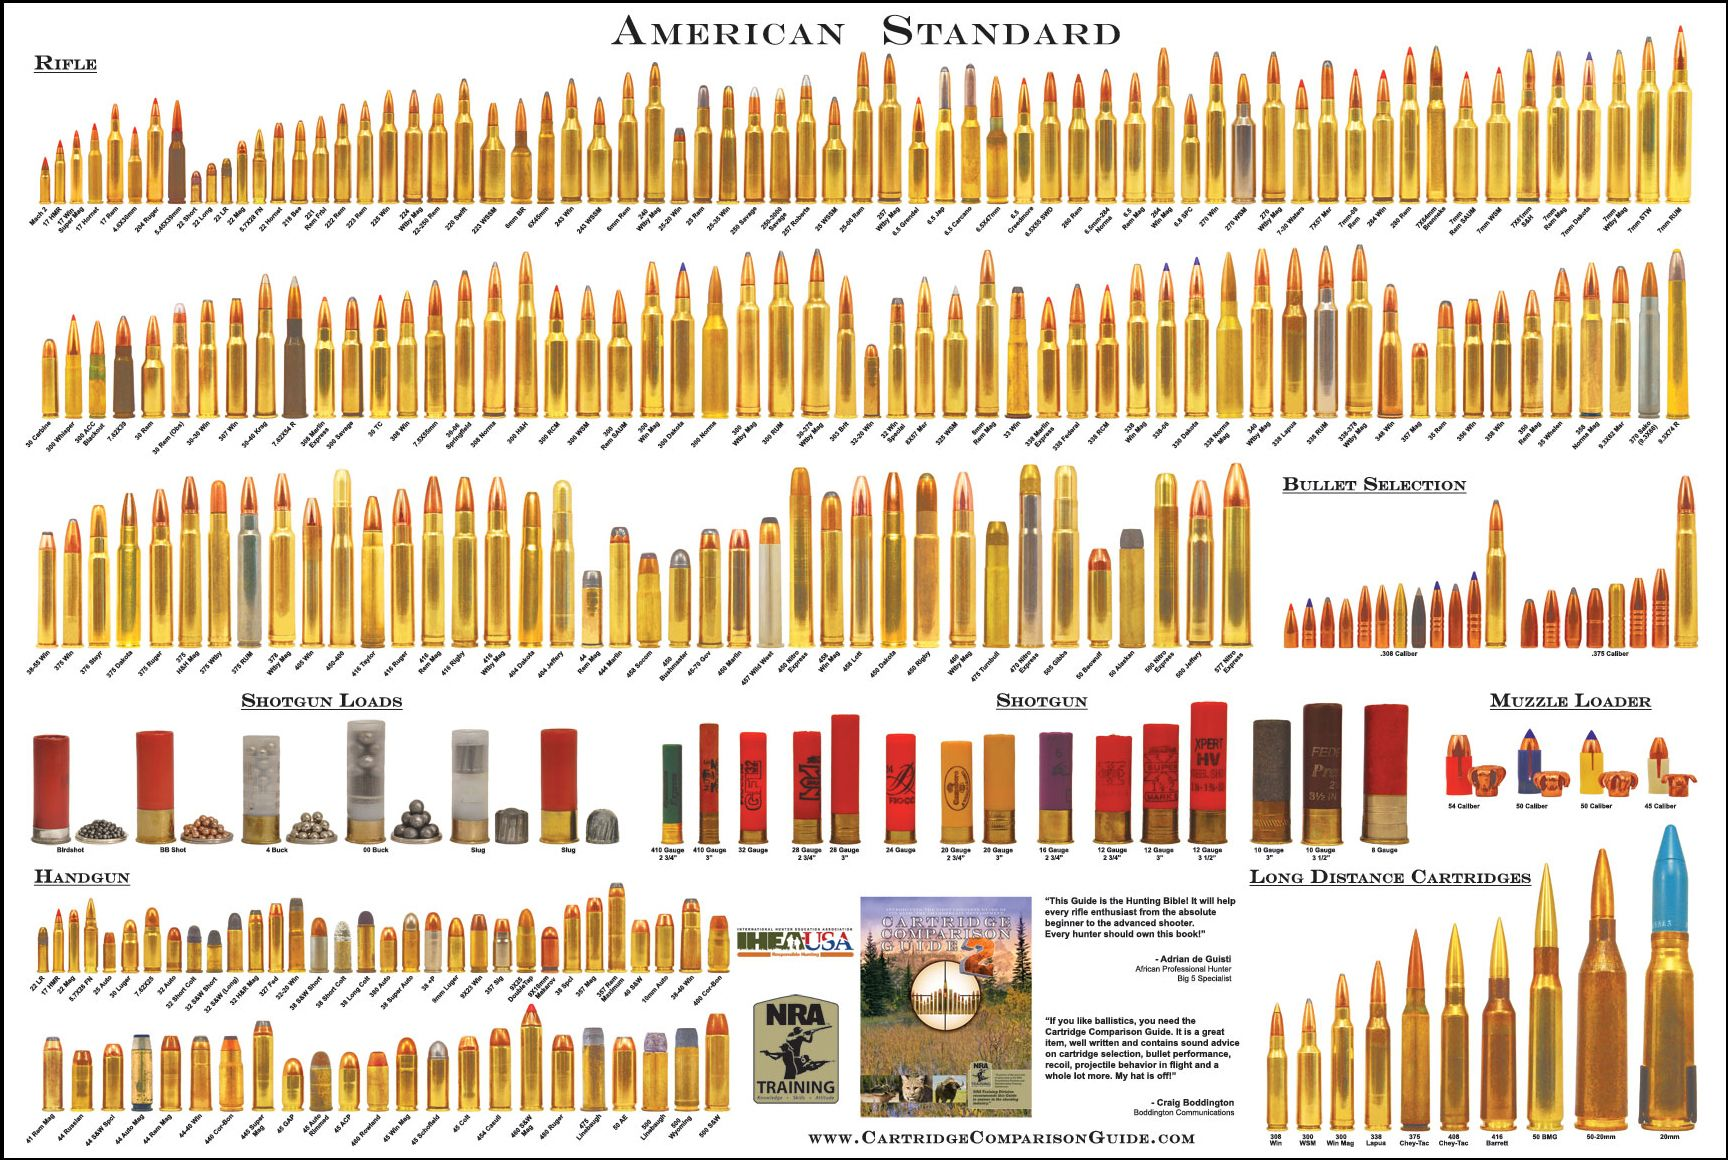 Bullet Chart Caliber From Small To Large Comparison